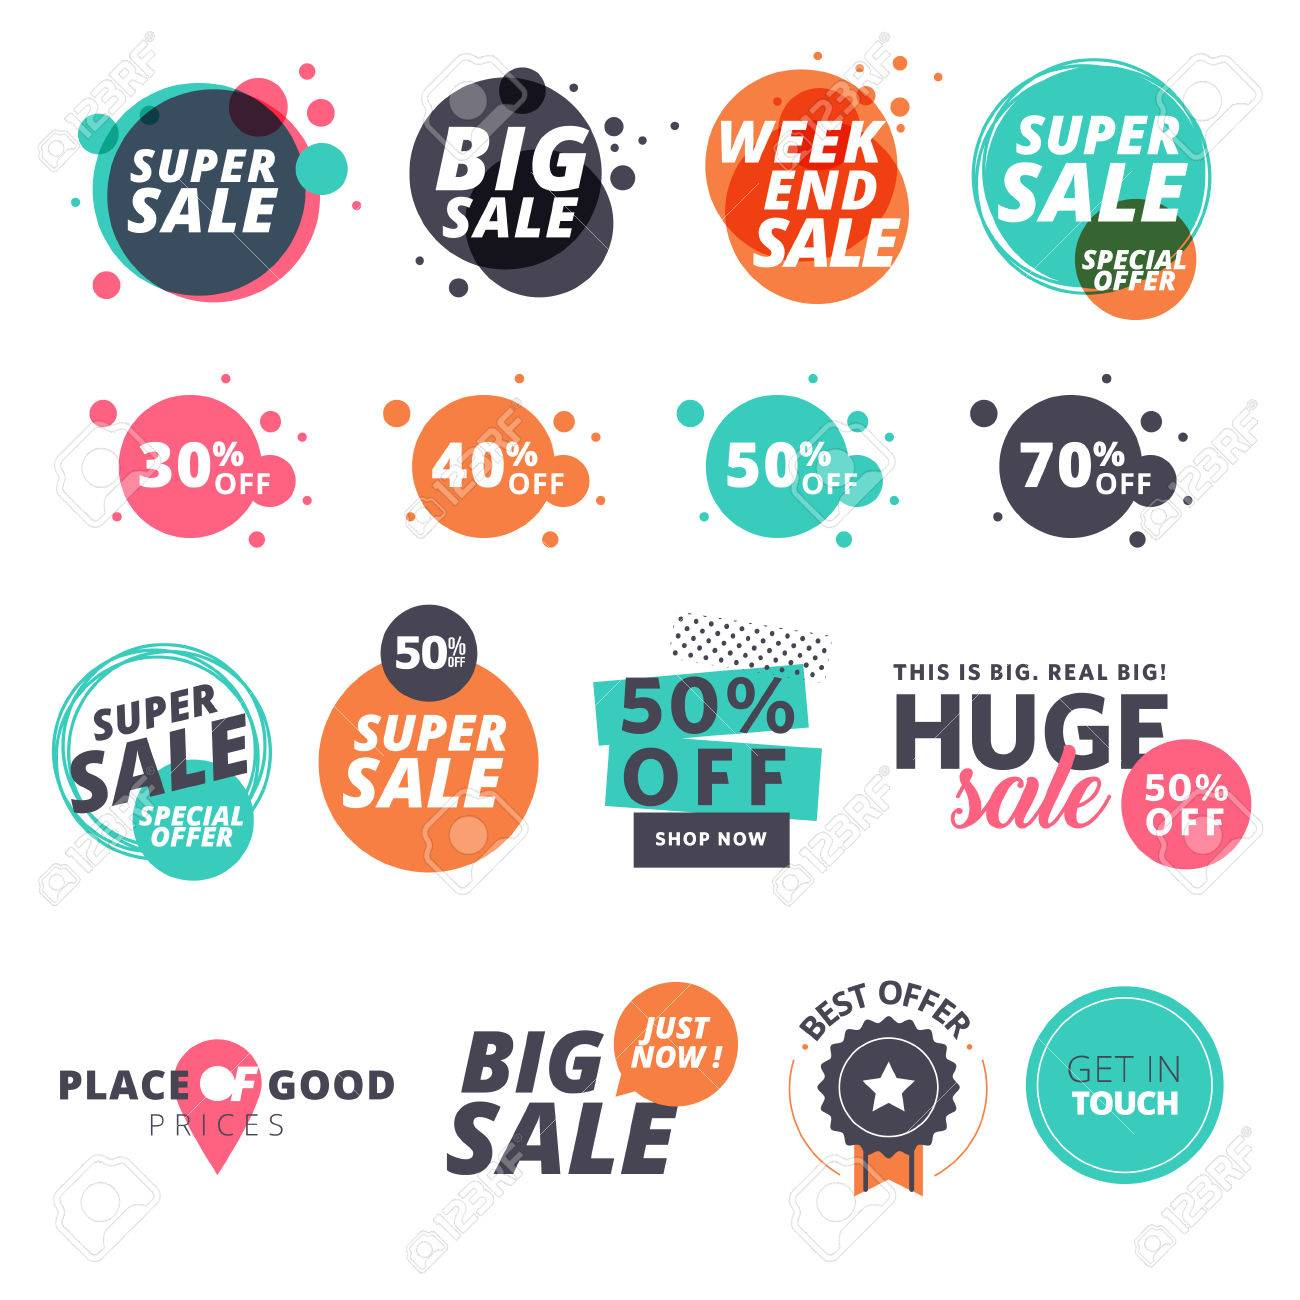 Set of flat design sale stickers illustrations for online shopping product promotions website